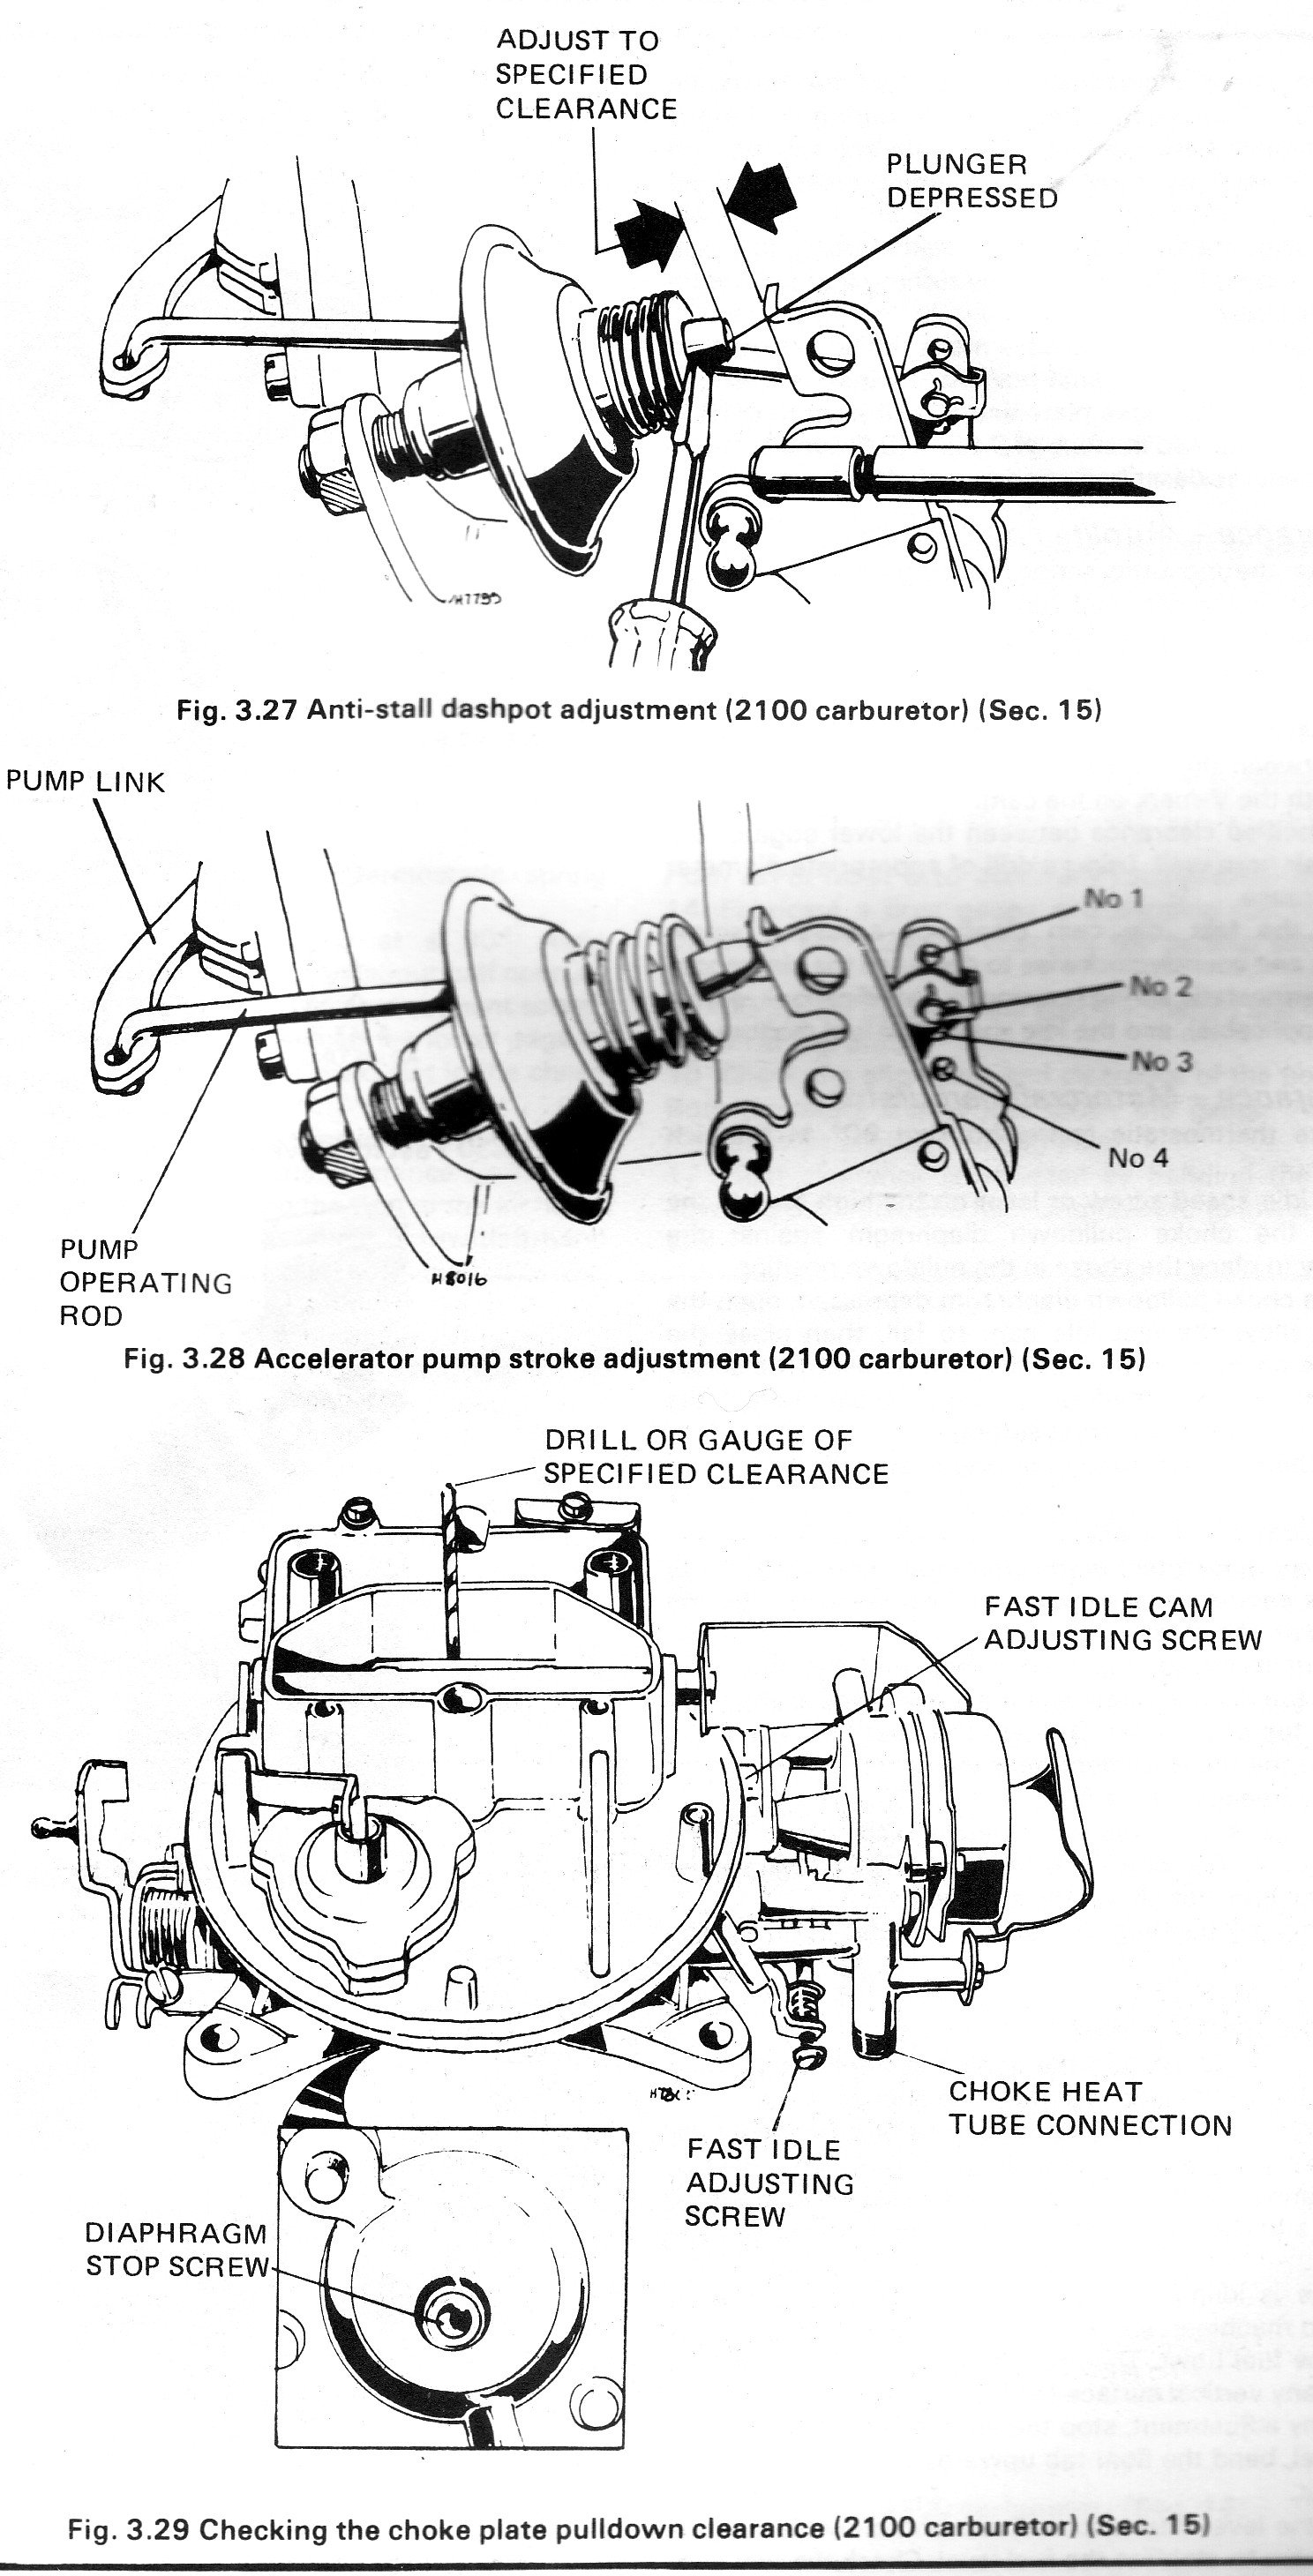 63151d1236398746 2100 carb diagram motorcraft 2100 2100 carb diagram page 2 ford mustang forum Motorcraft 2150 Carburetor Identification at edmiracle.co